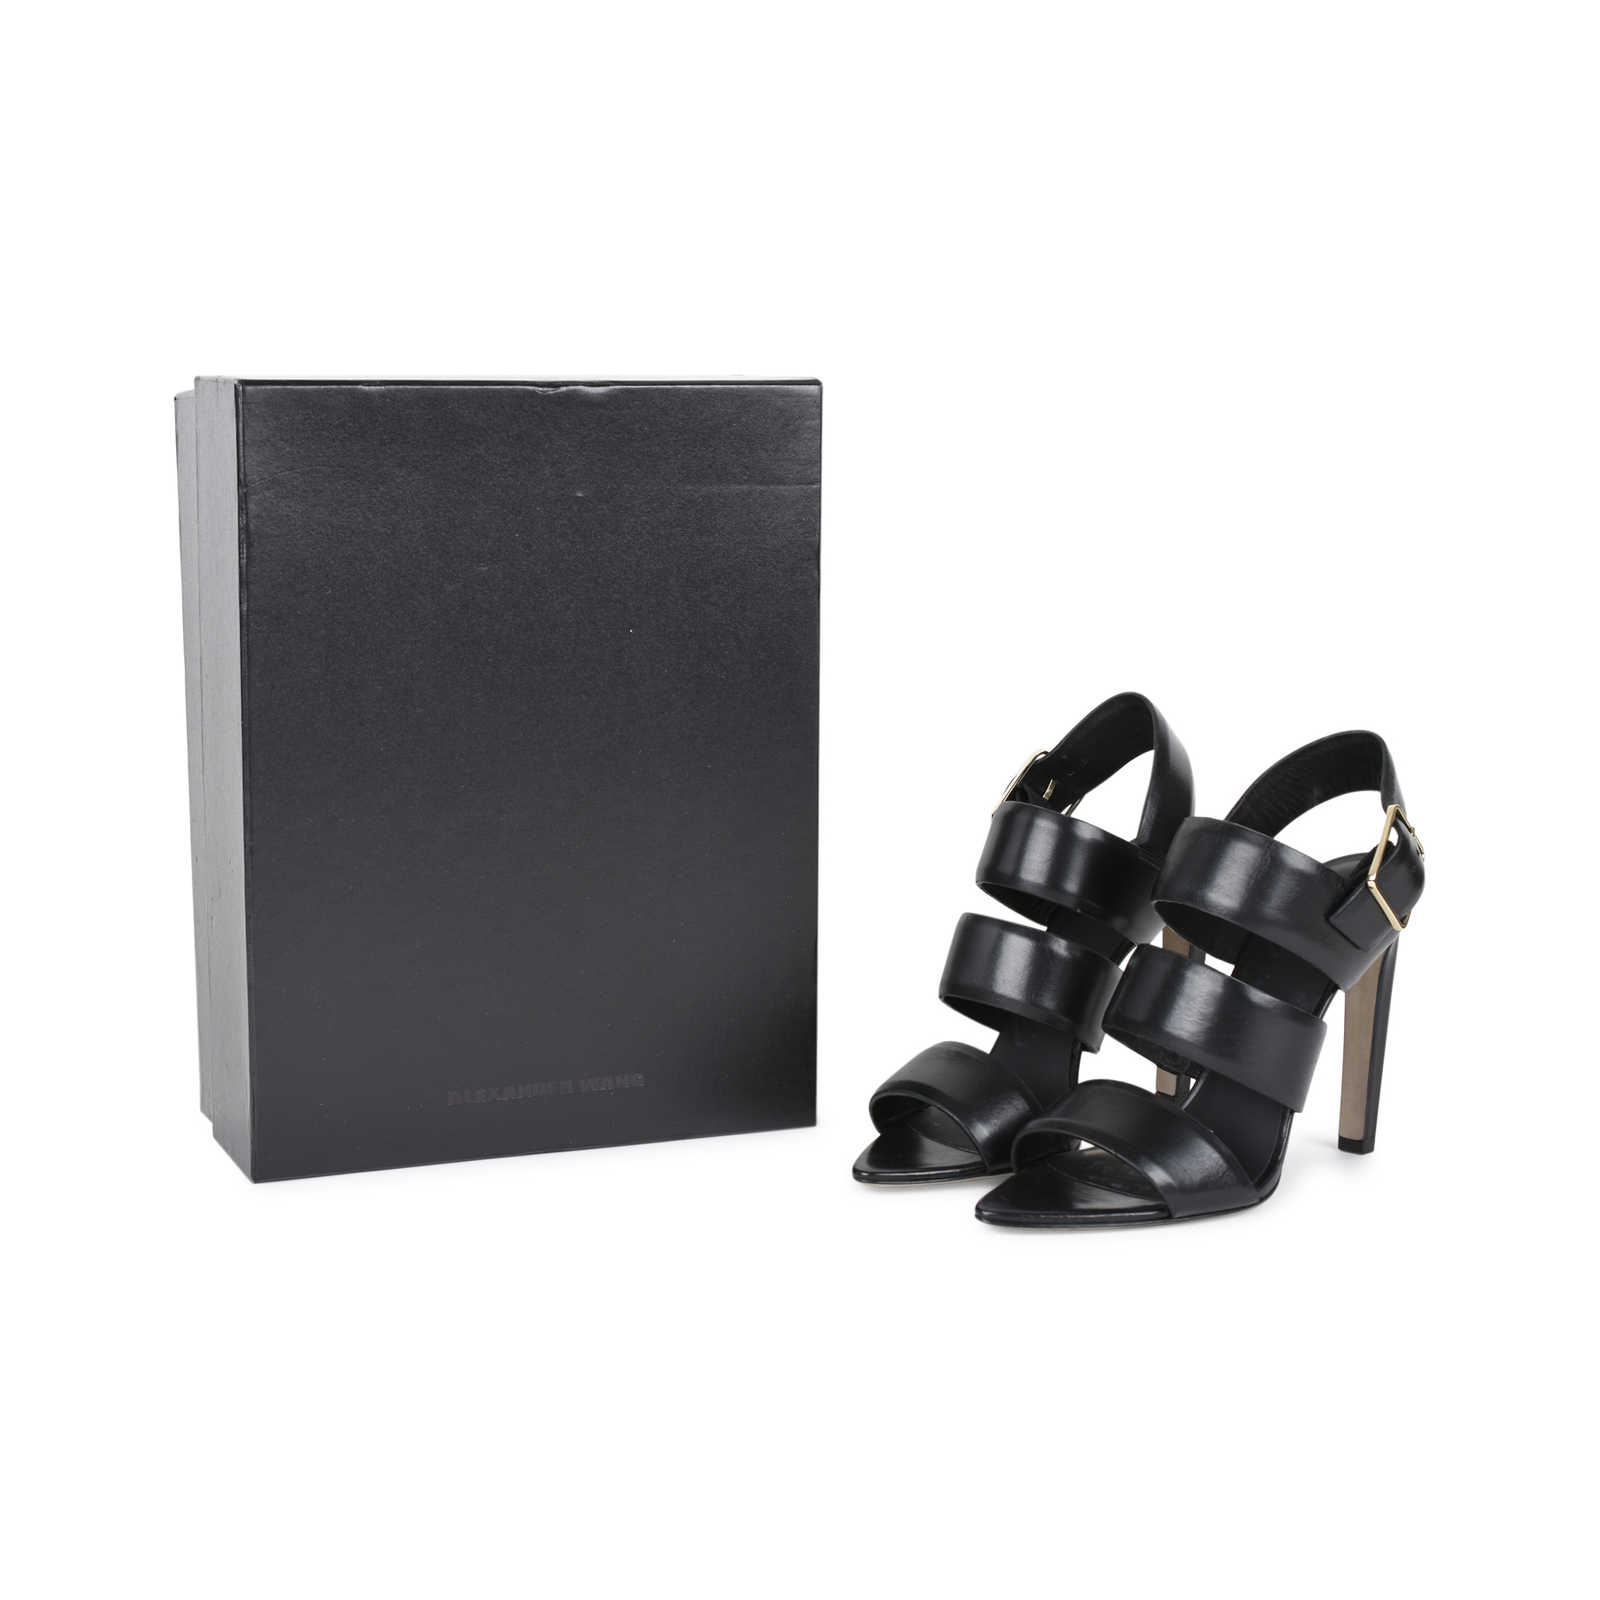 a400c5b08f6 ... Authentic Second Hand Alexander Wang Kerry Slingback Sandals  (PSS-530-00002) -